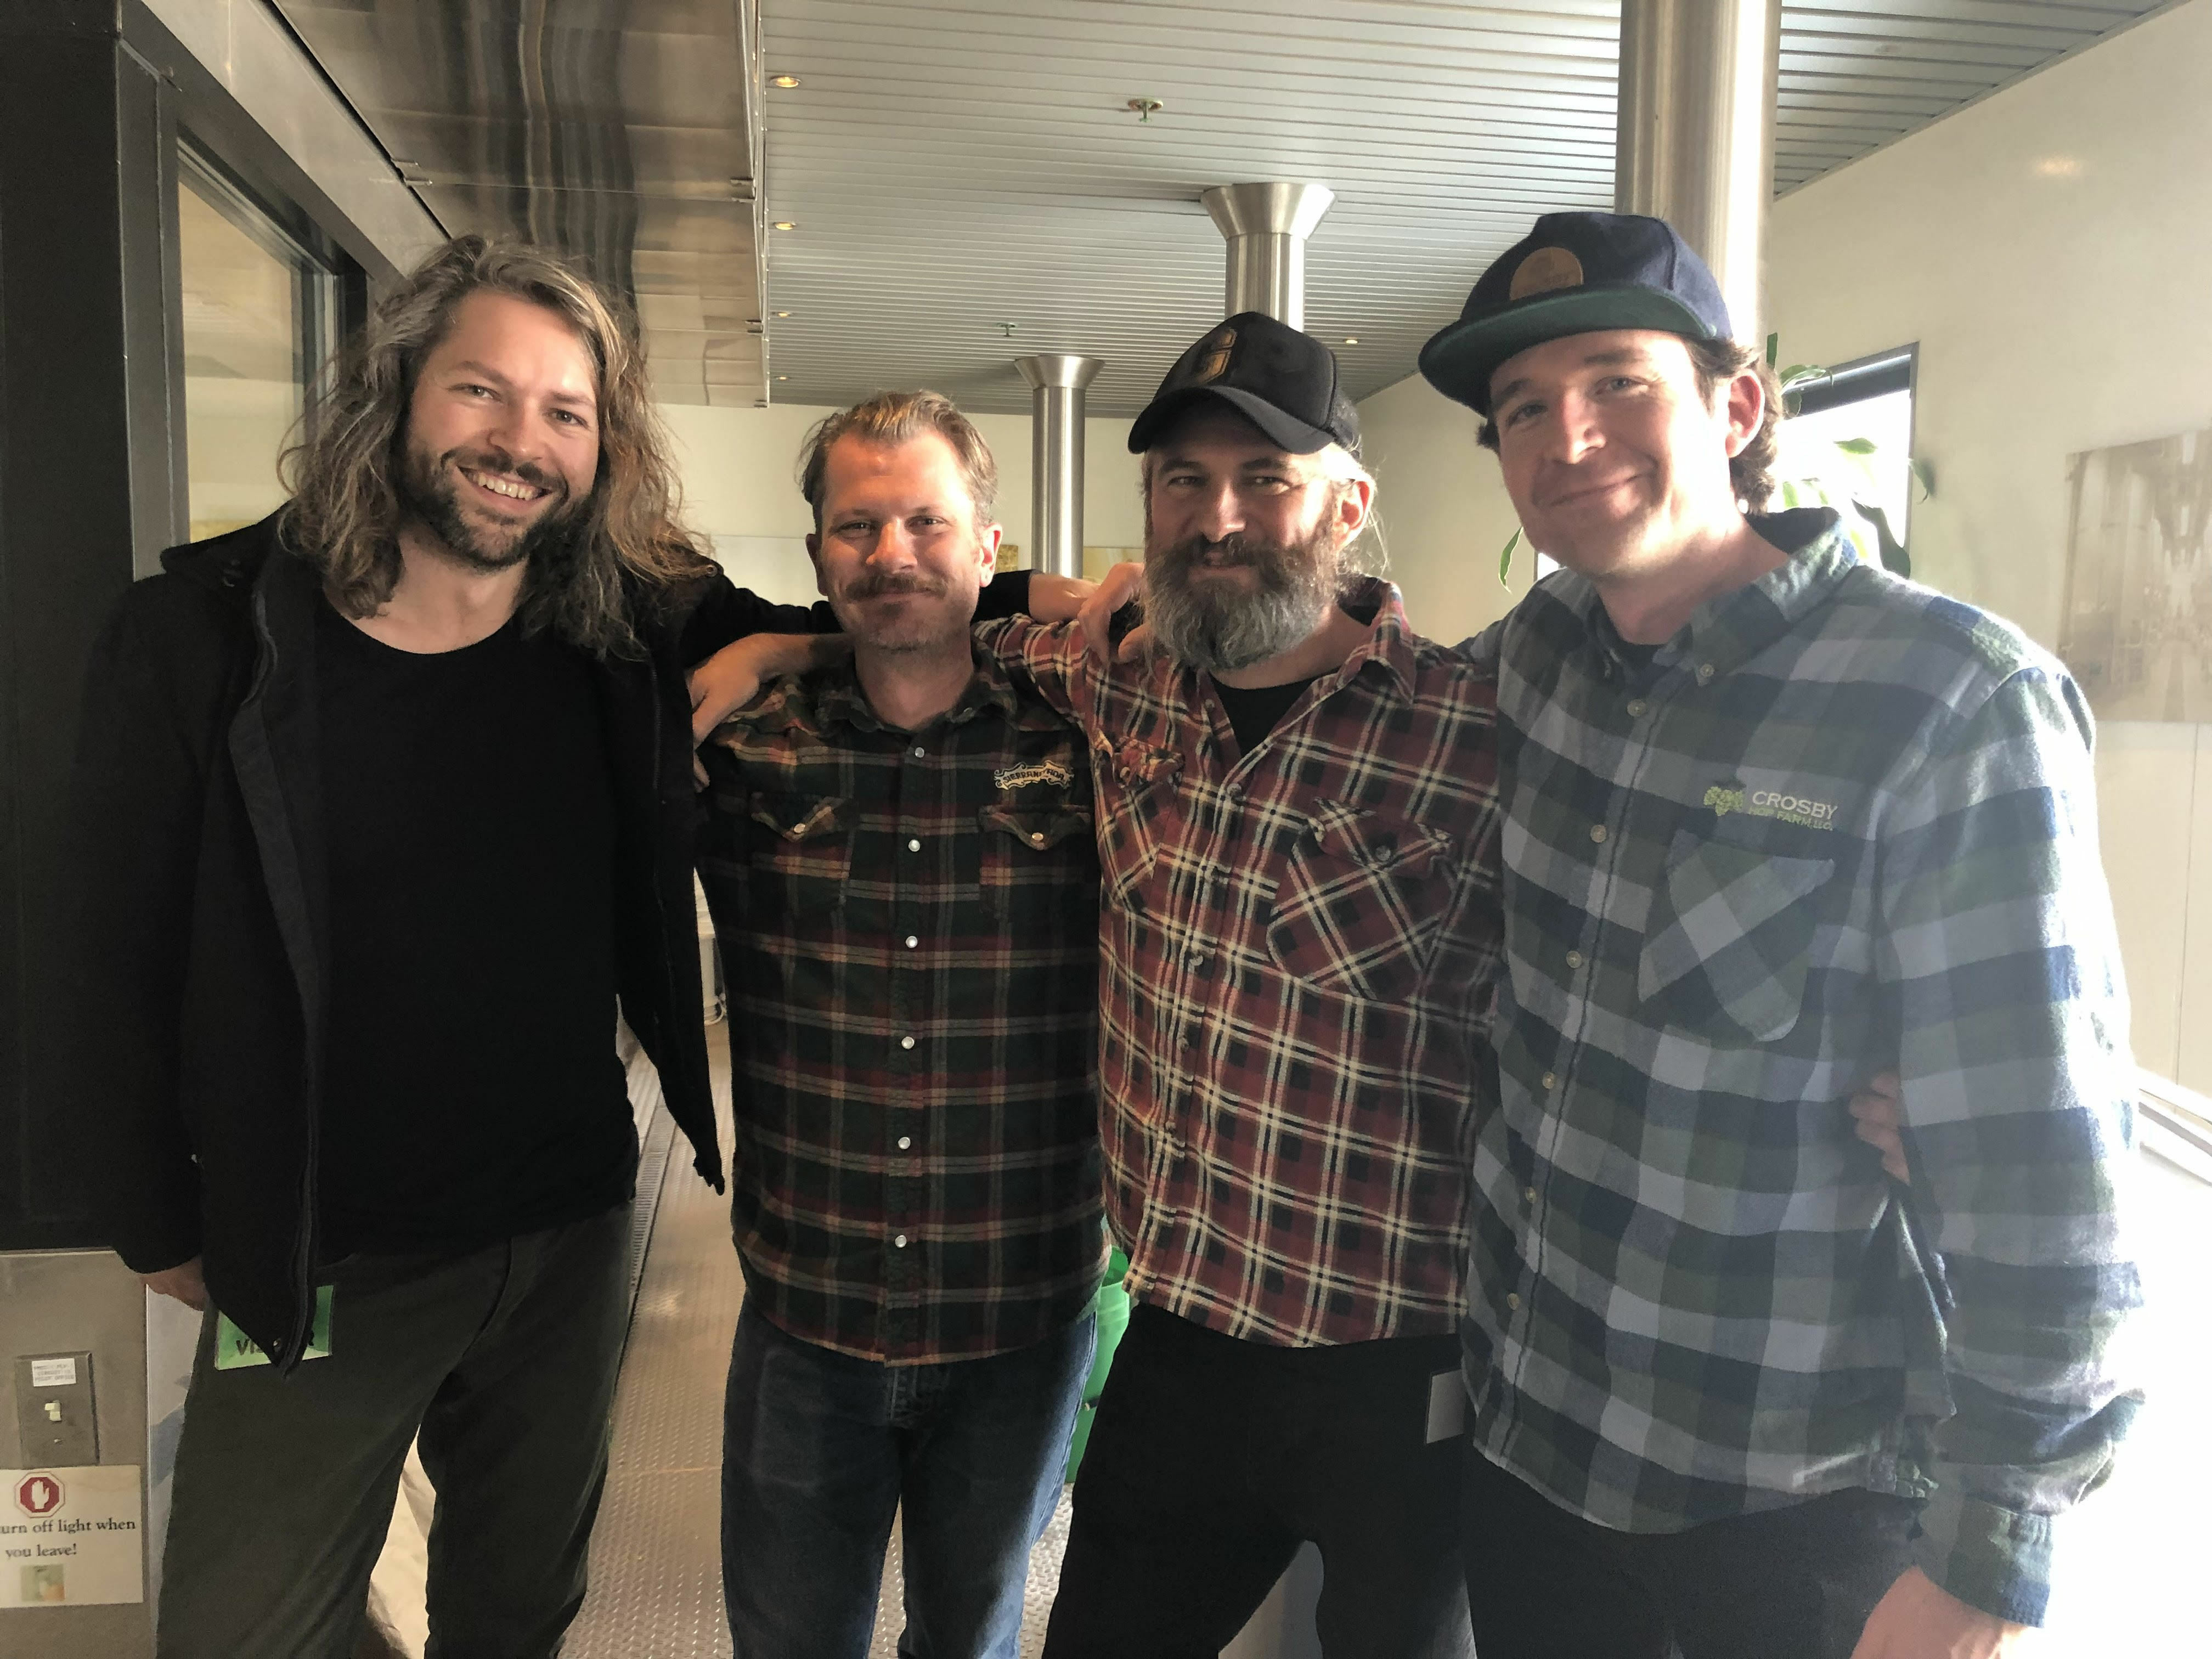 The-crew-from-Garage-Project-Sierra-Nevada-and-Crosby-Hop-Farm-collaborating-on-a-beer-for-the-2019-Craft-Brewers-Conference.-image-courtesy-of-Crosby-Hop-Farm